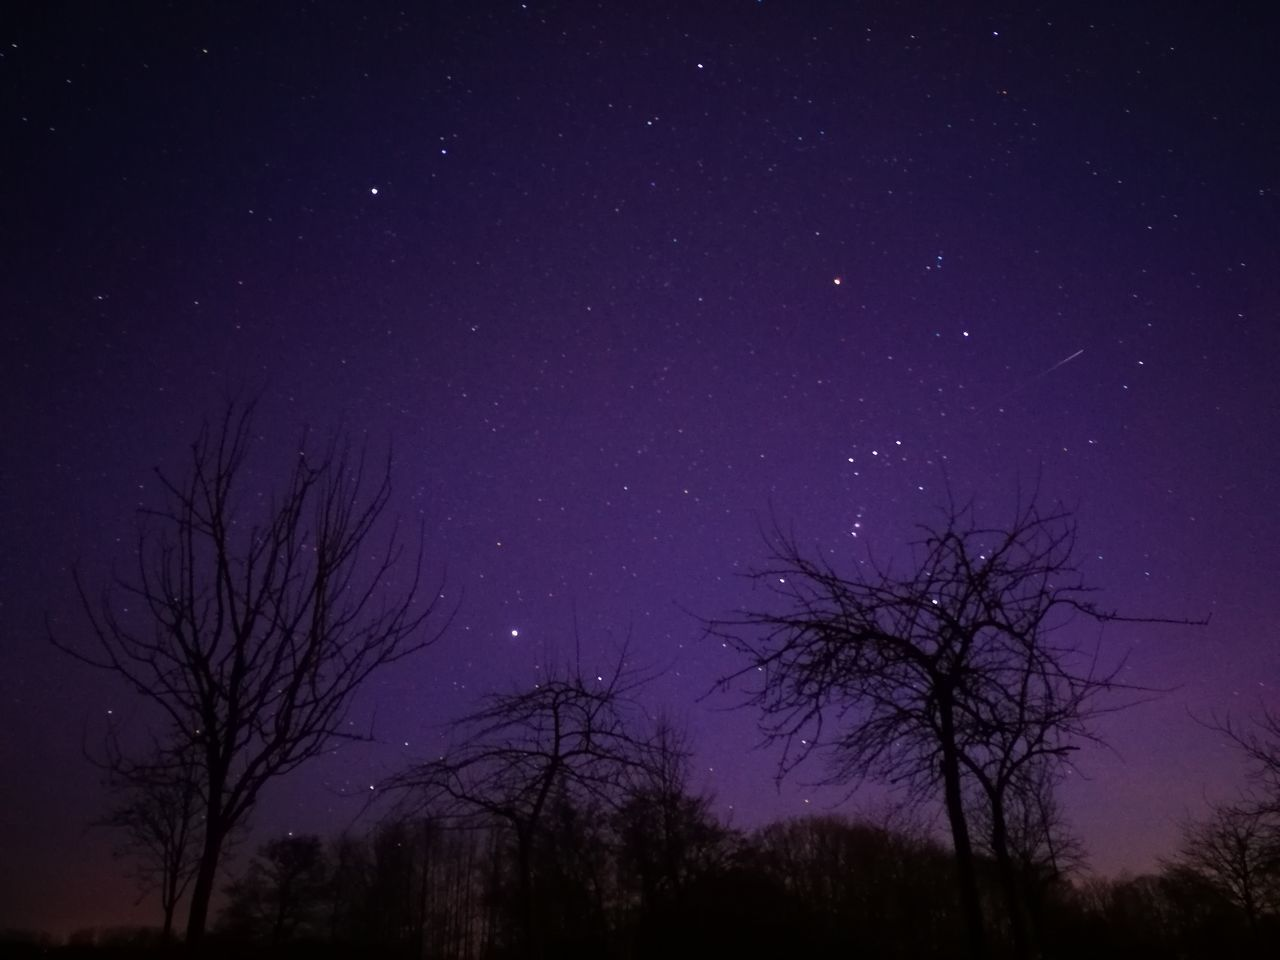 Star - Space Astronomy Sky Night Tree Space And Astronomy Space Star Field Beauty In Nature Low Angle View Galaxy Constellation Scenics Nature Silhouette Tranquil Scene Outdoors No People Tranquility HuaweiP9 EyeEm